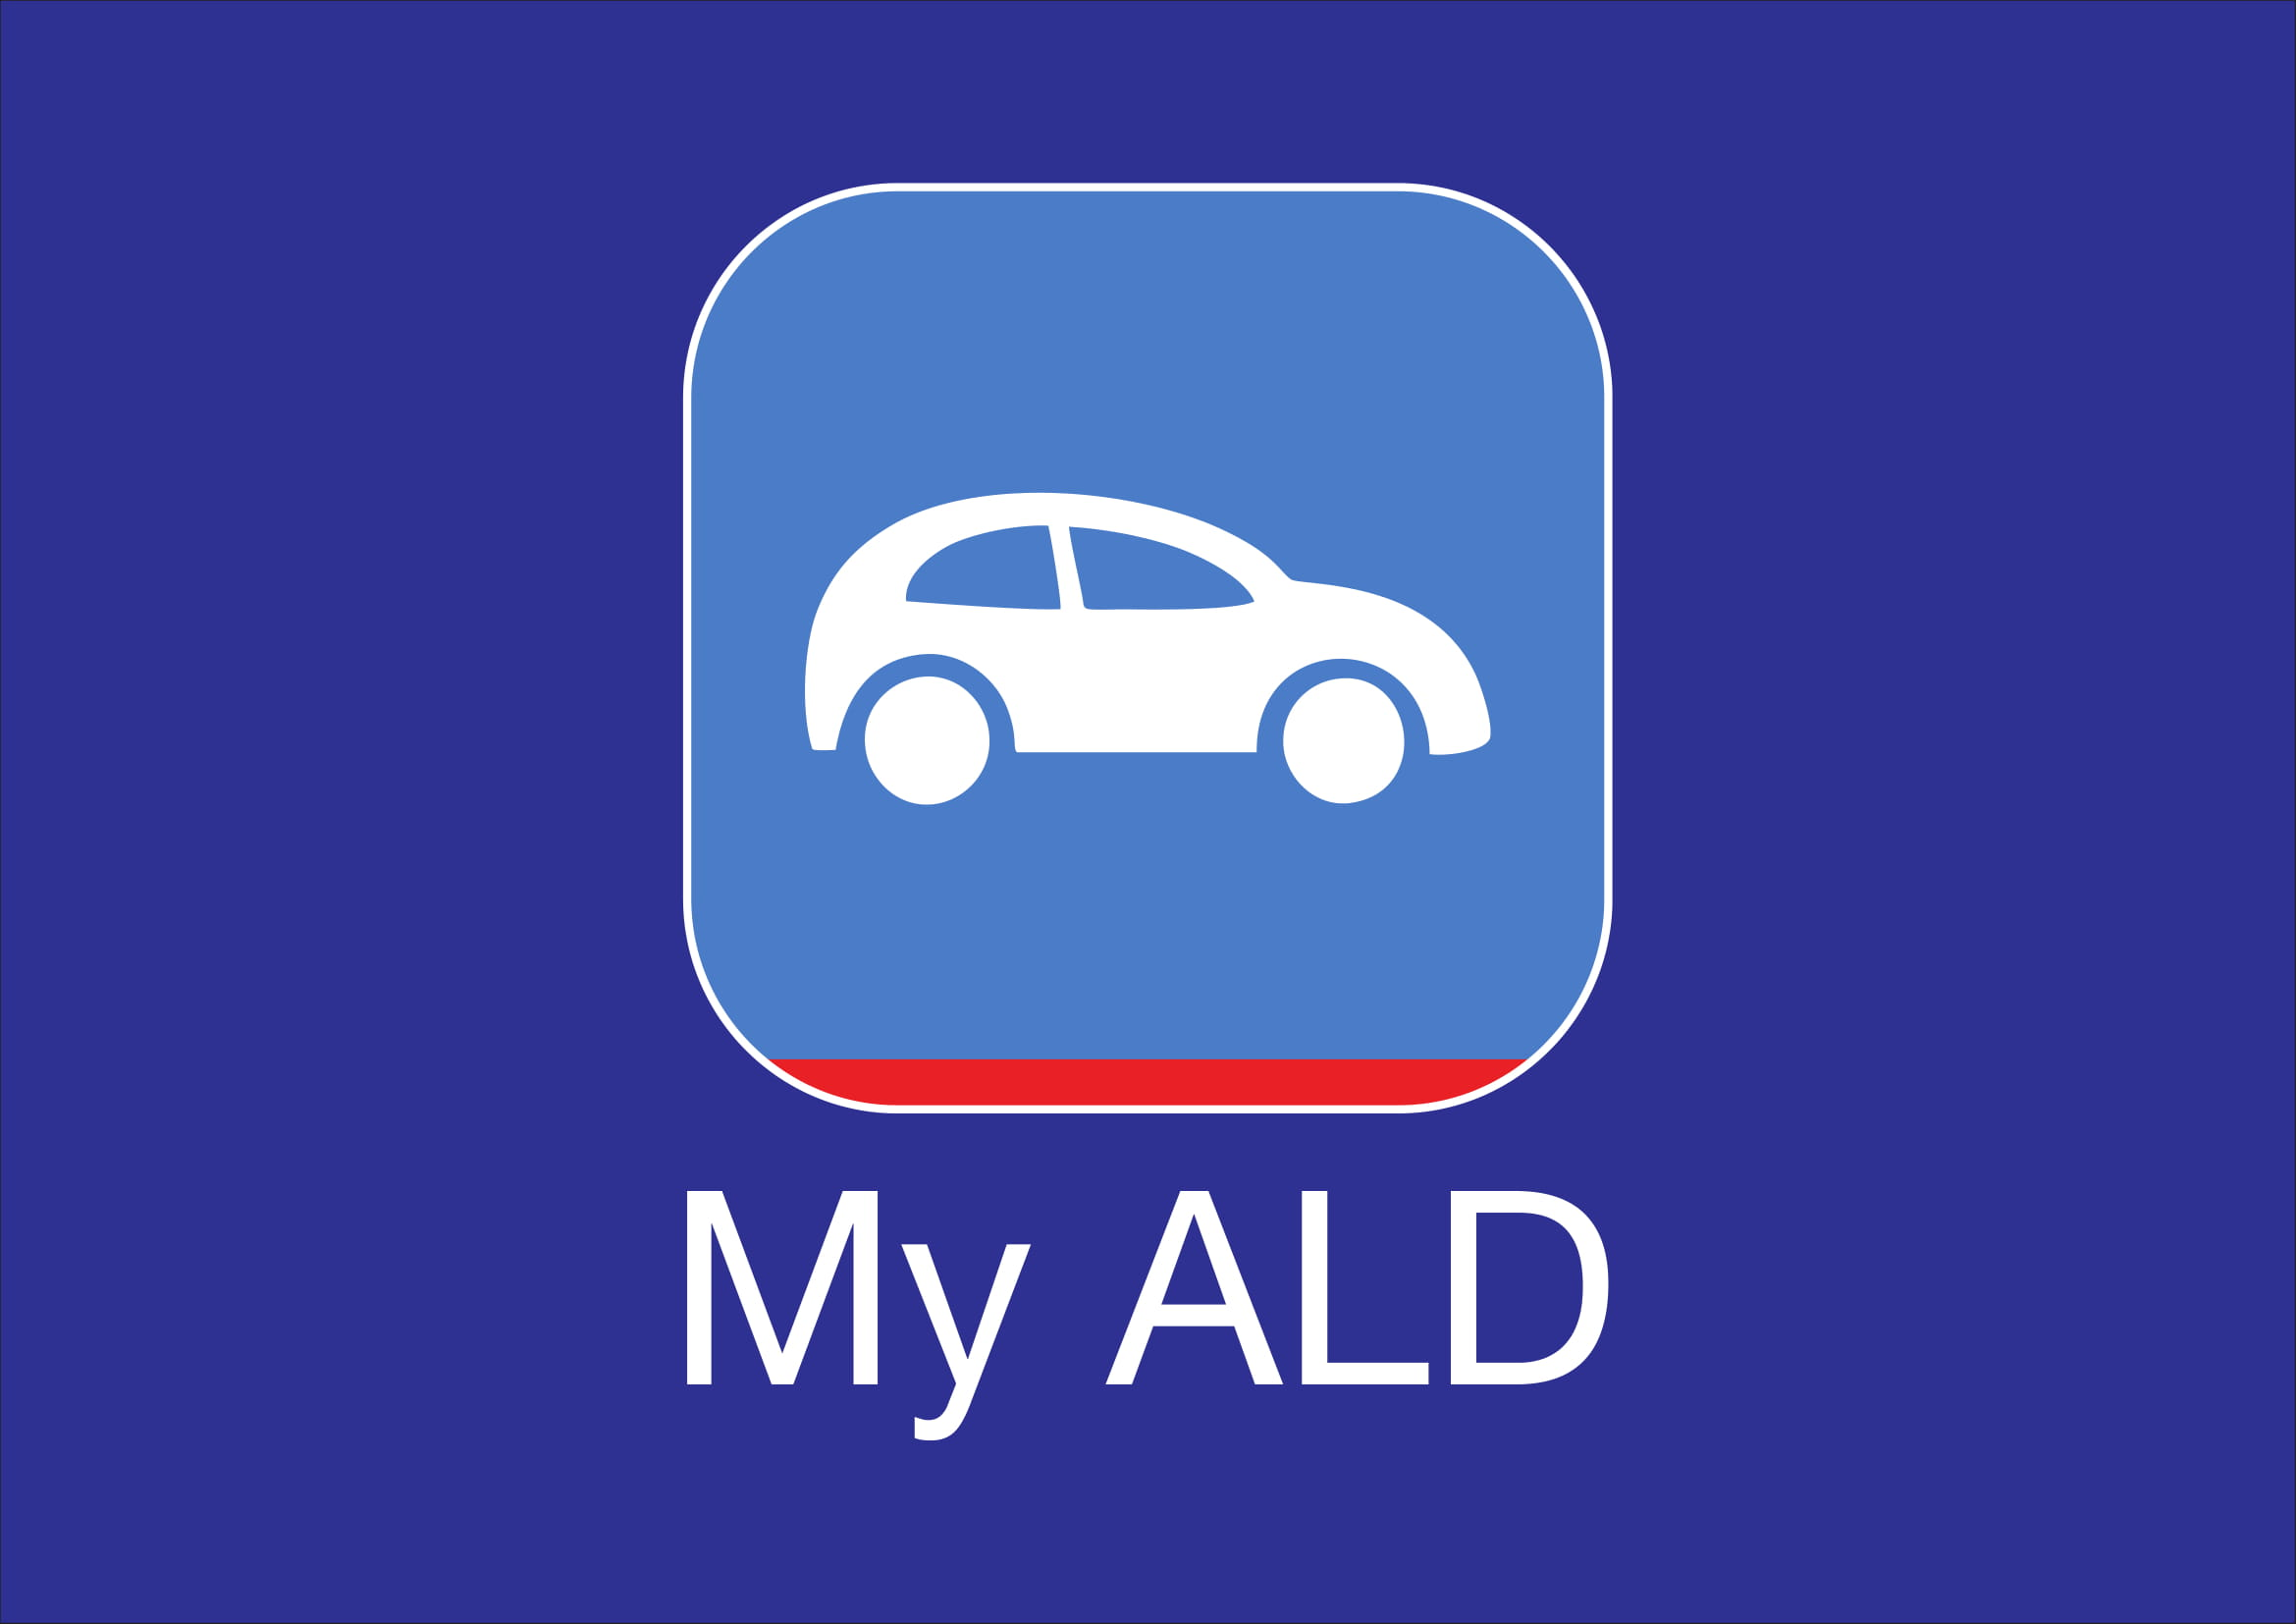 Launch of all-new My ALD app